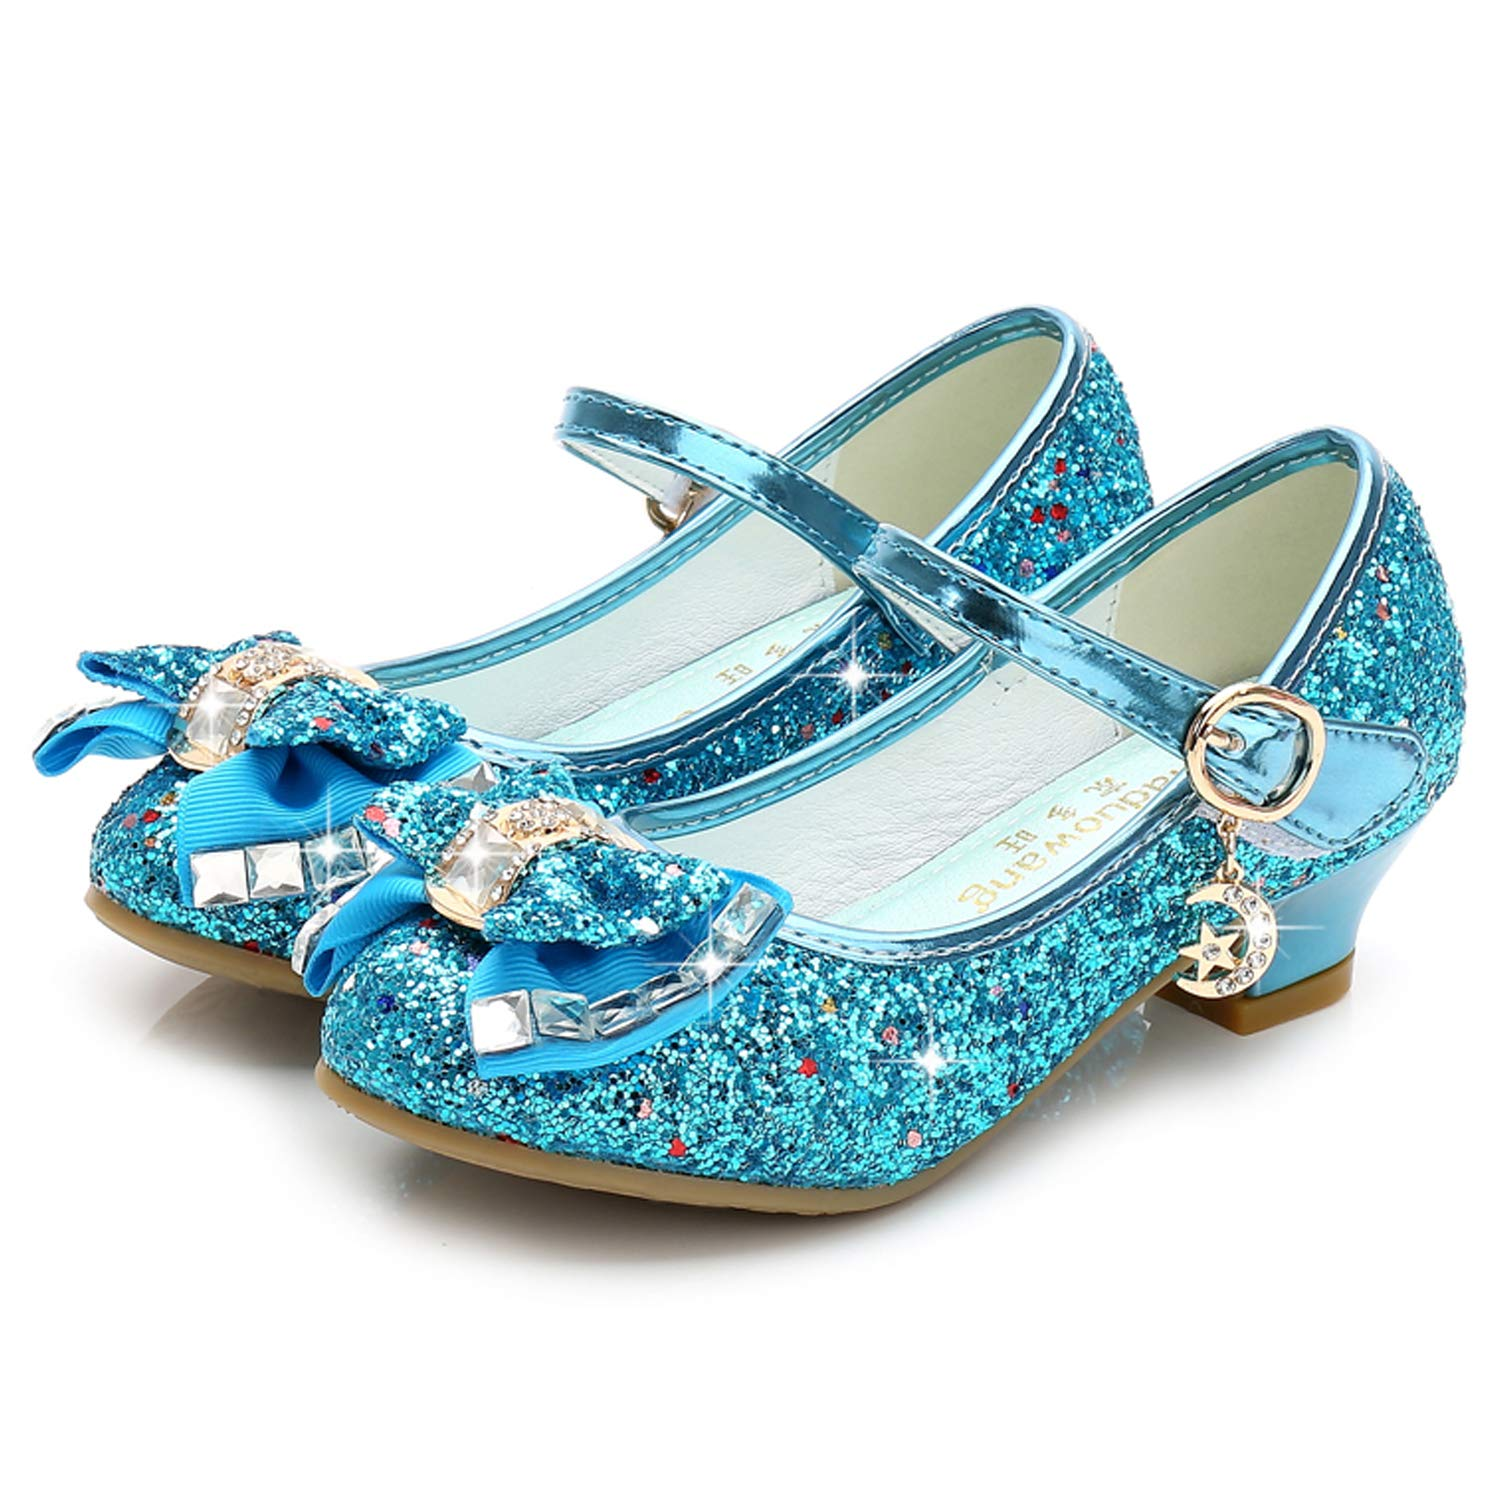 c6570bd2a198 Waloka Blue Mary Jane Glitter Shoes for Girls Size 13 Wedding Party Wear  High Heels Shoes for Girls Wedding 8 Yr Cosplay Low Heeled Princess Little  Kid ...